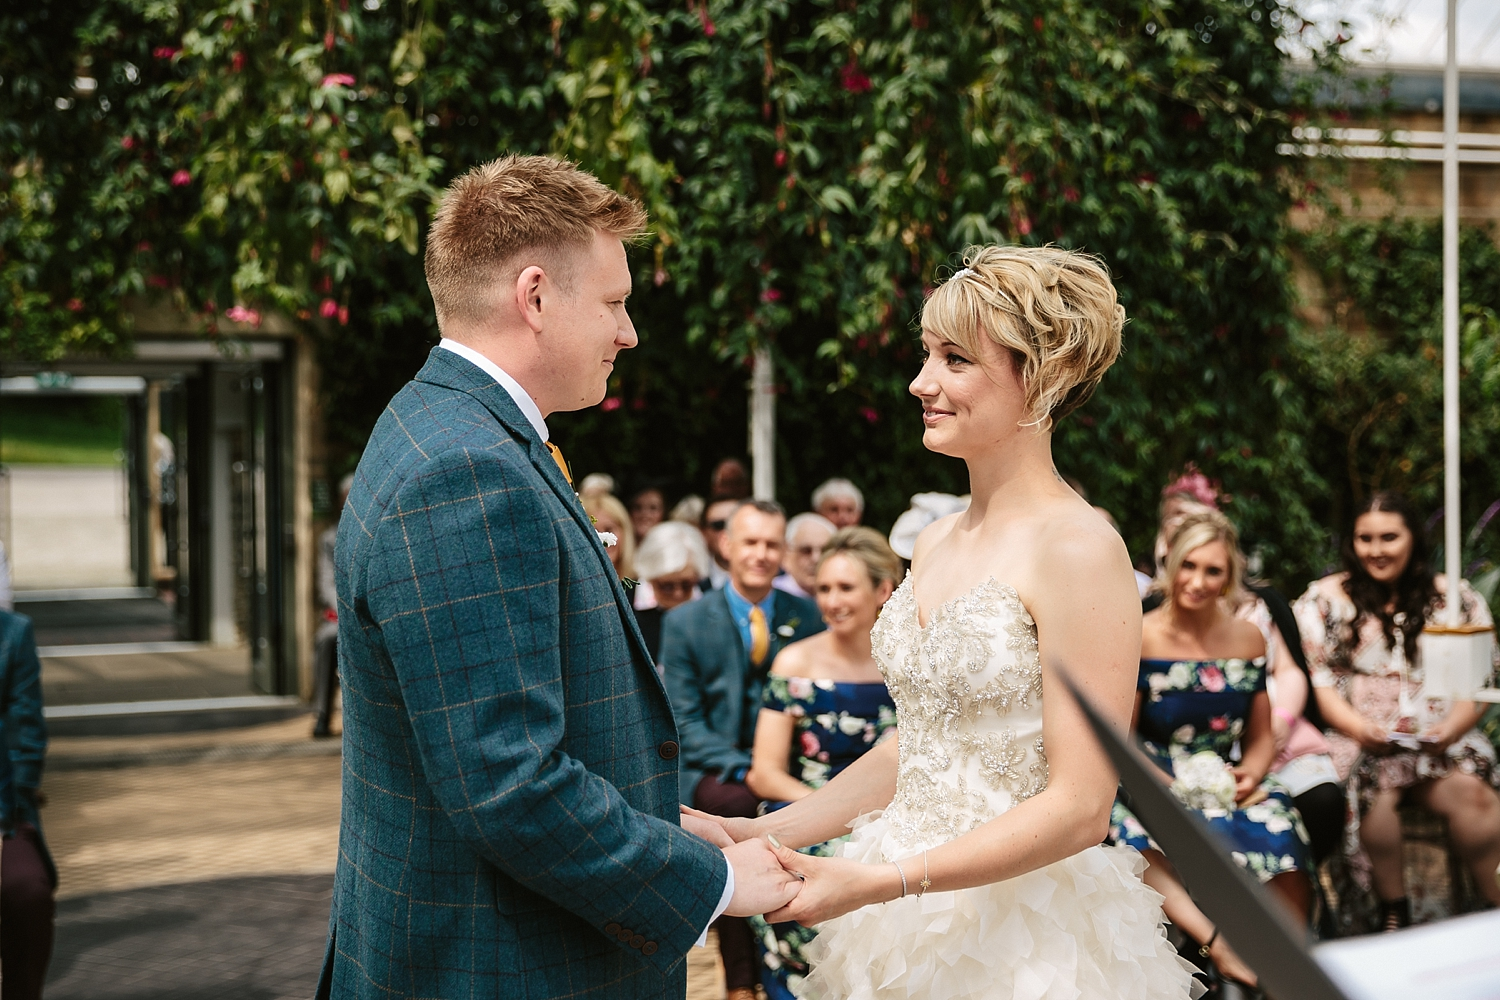 Natlie-Matthew-yorkshire-natural-relaxed-fun-documentary-reportage-candid-wedding-photography-photographer-Derby-Nottingham-Derbyshire-Nottinghamshire-Leicestershire-Lincolnshire-East-Midlands-43.jpg